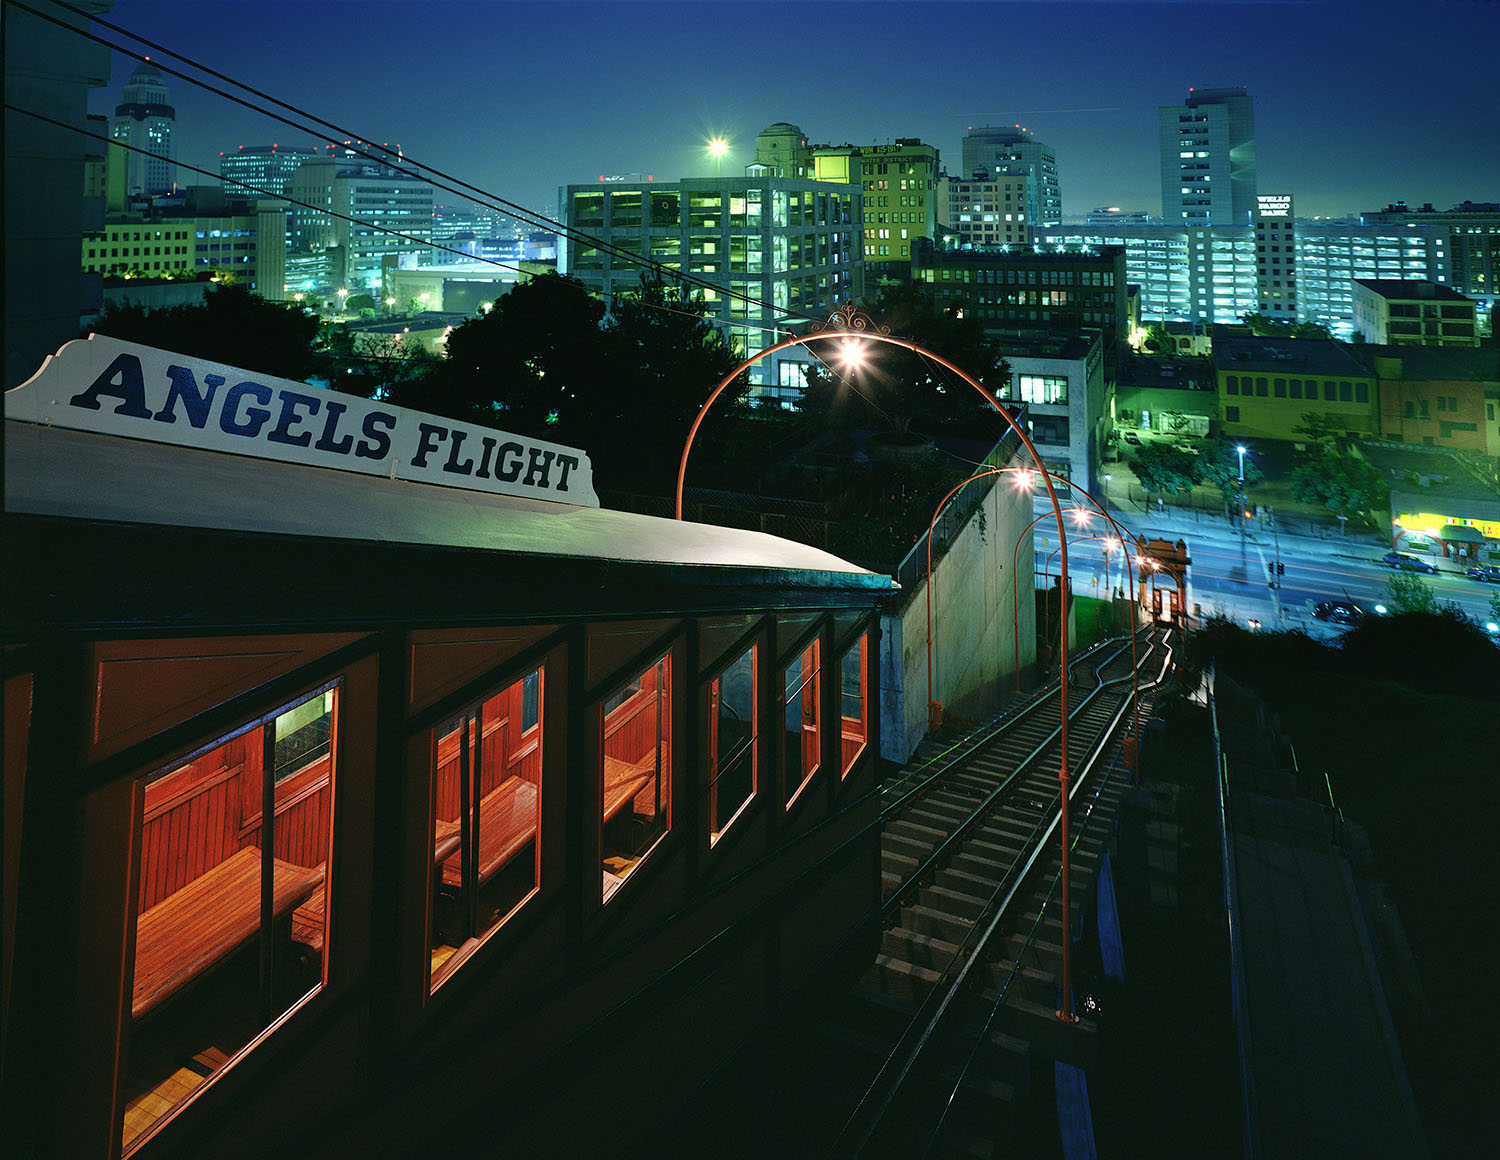 001-3022-17cf-Angels Flight.jpg